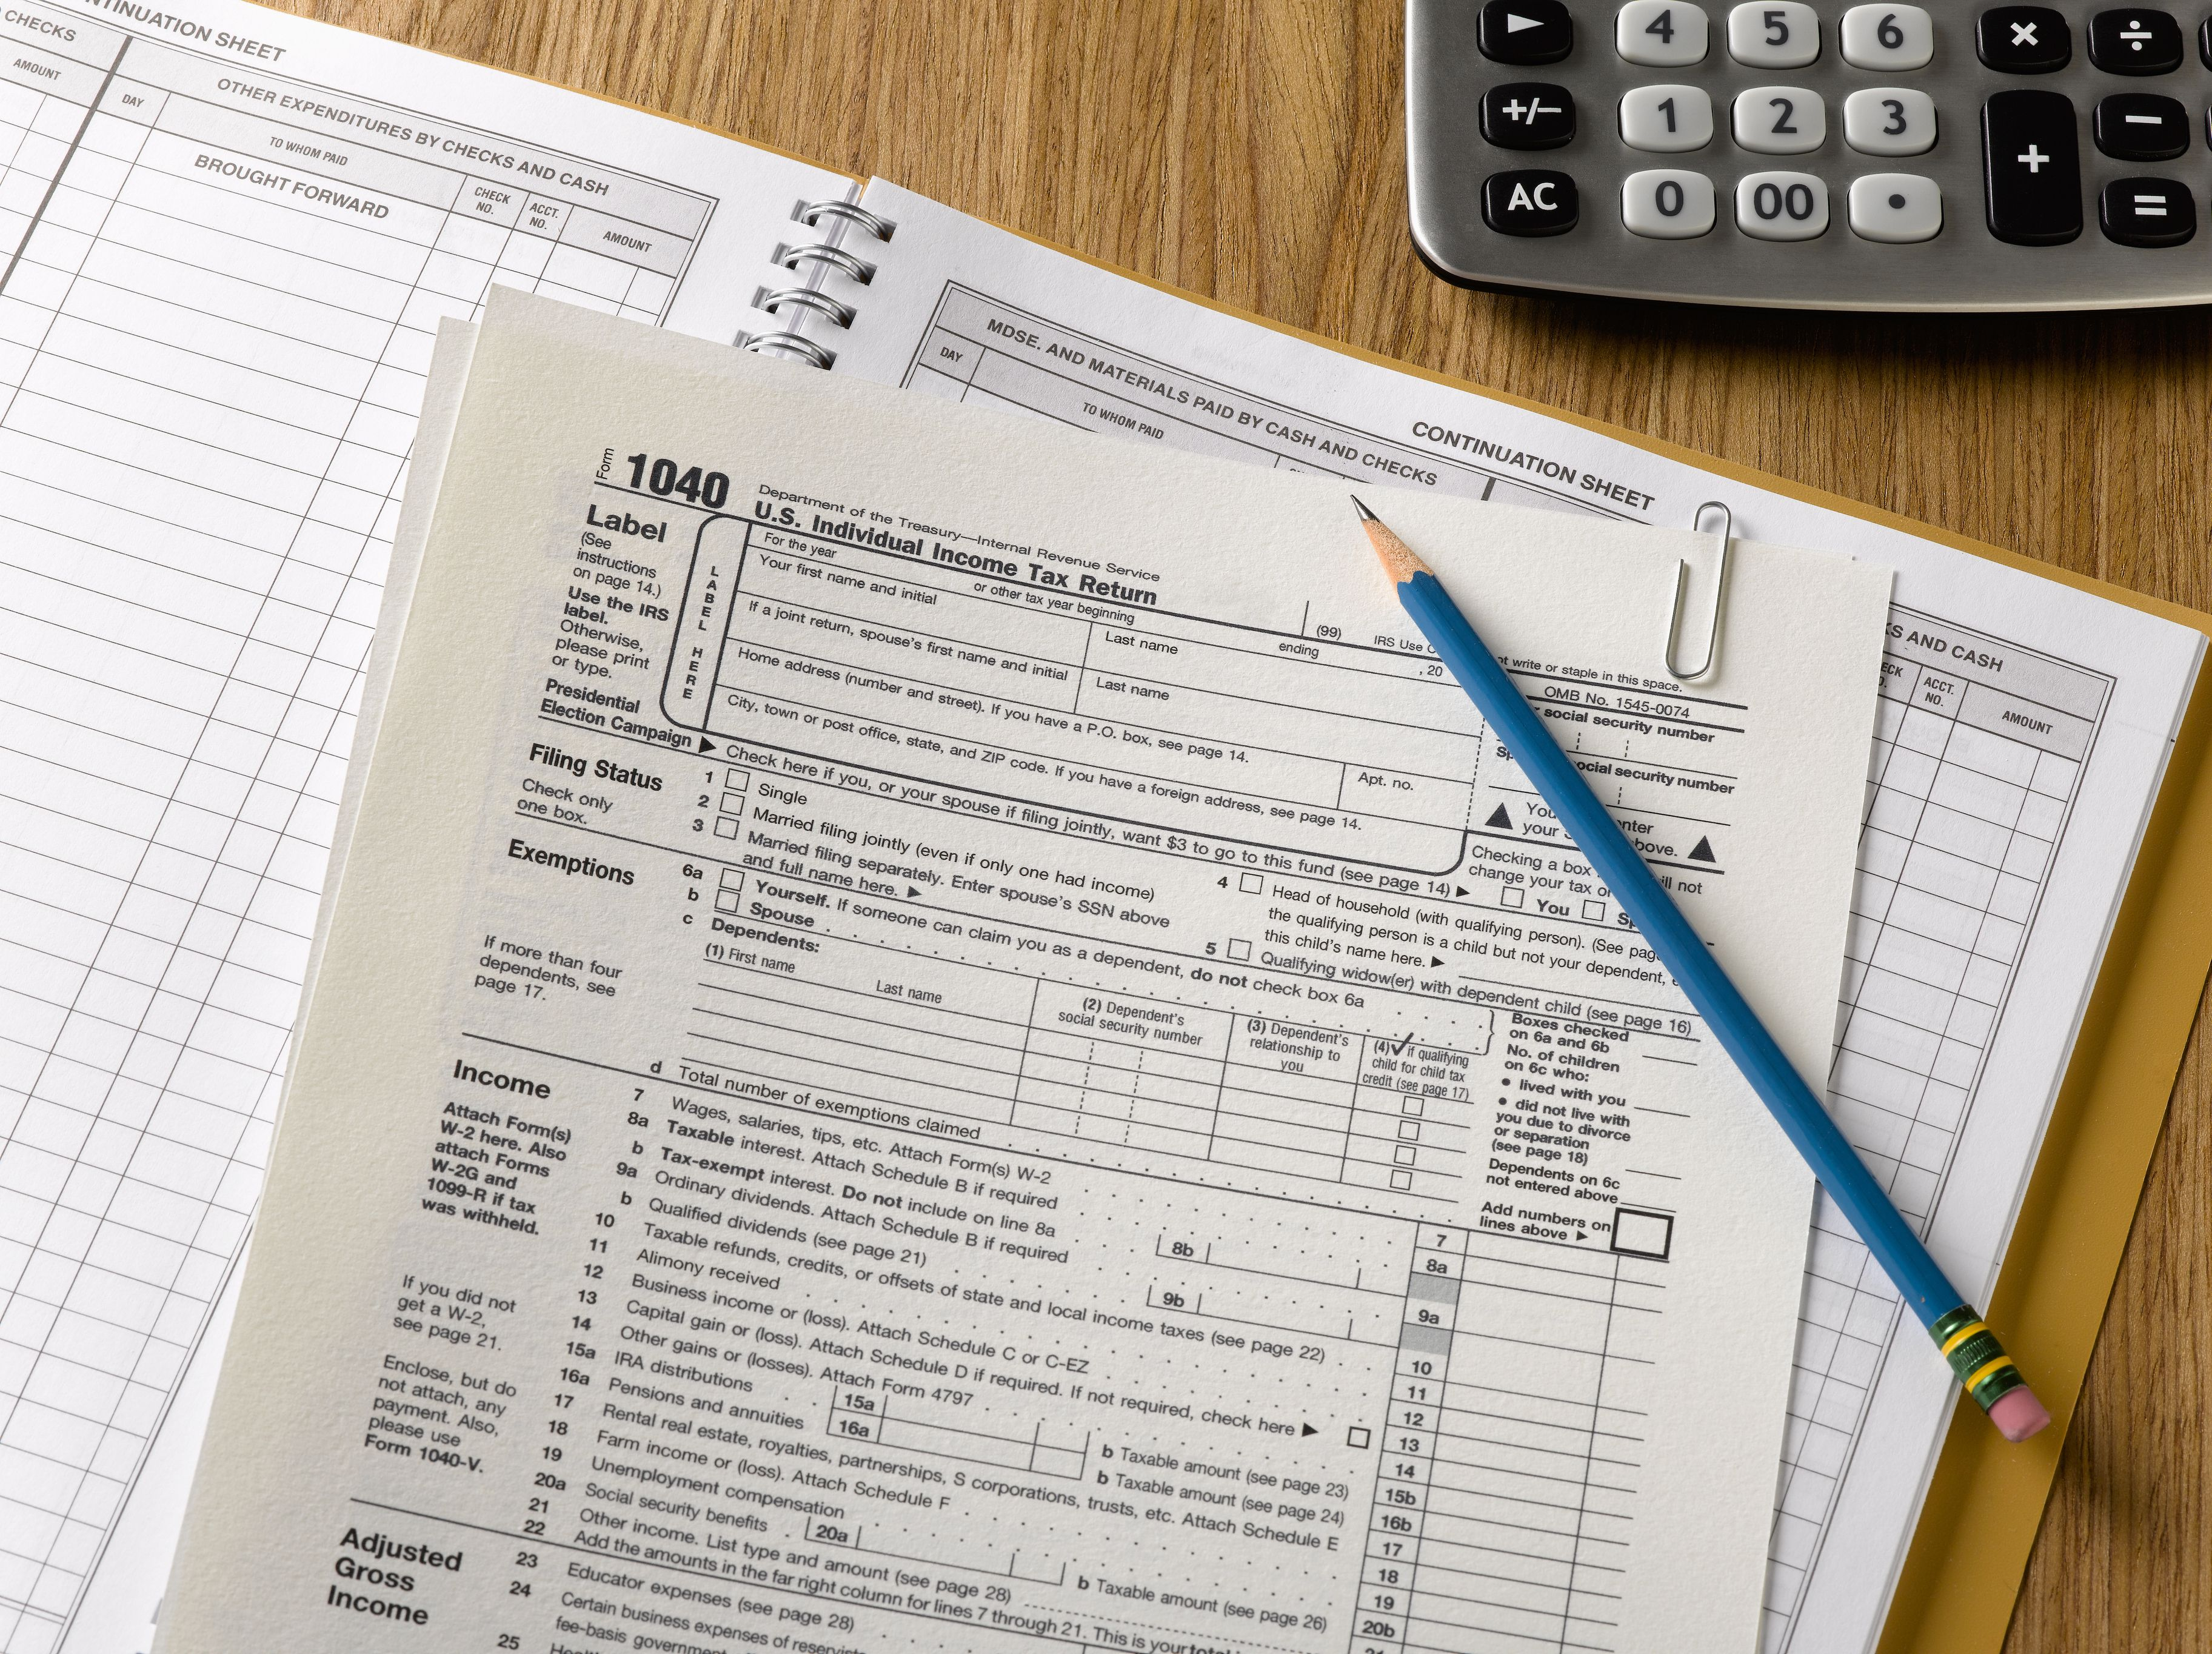 Filing a late tax return and protecting your refunds falaconquin